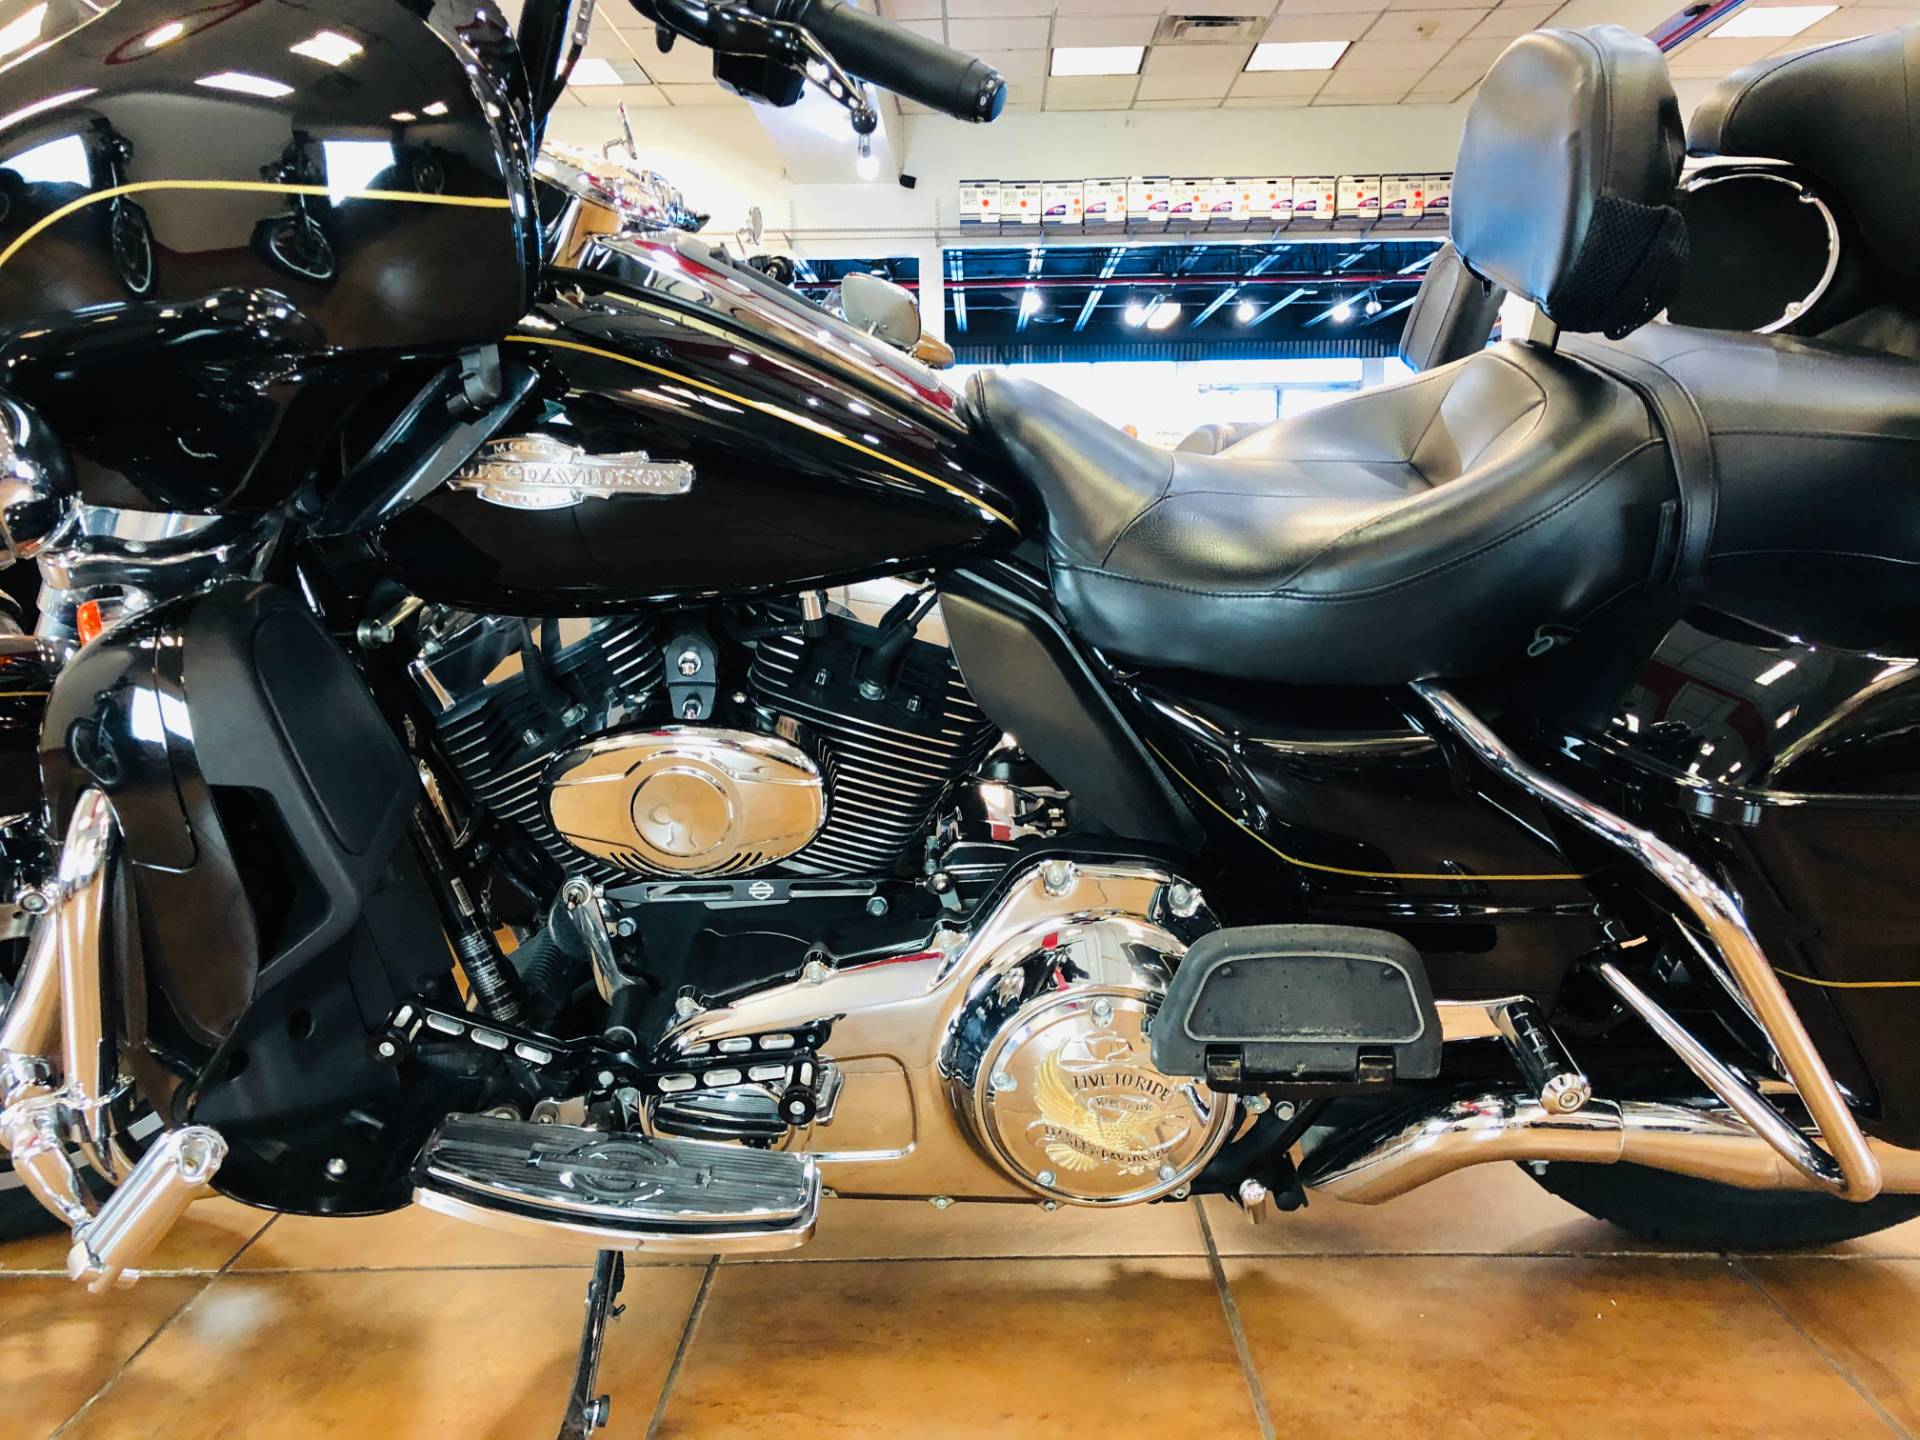 2014 Harley-Davidson Ultra Limited in Pinellas Park, Florida - Photo 14